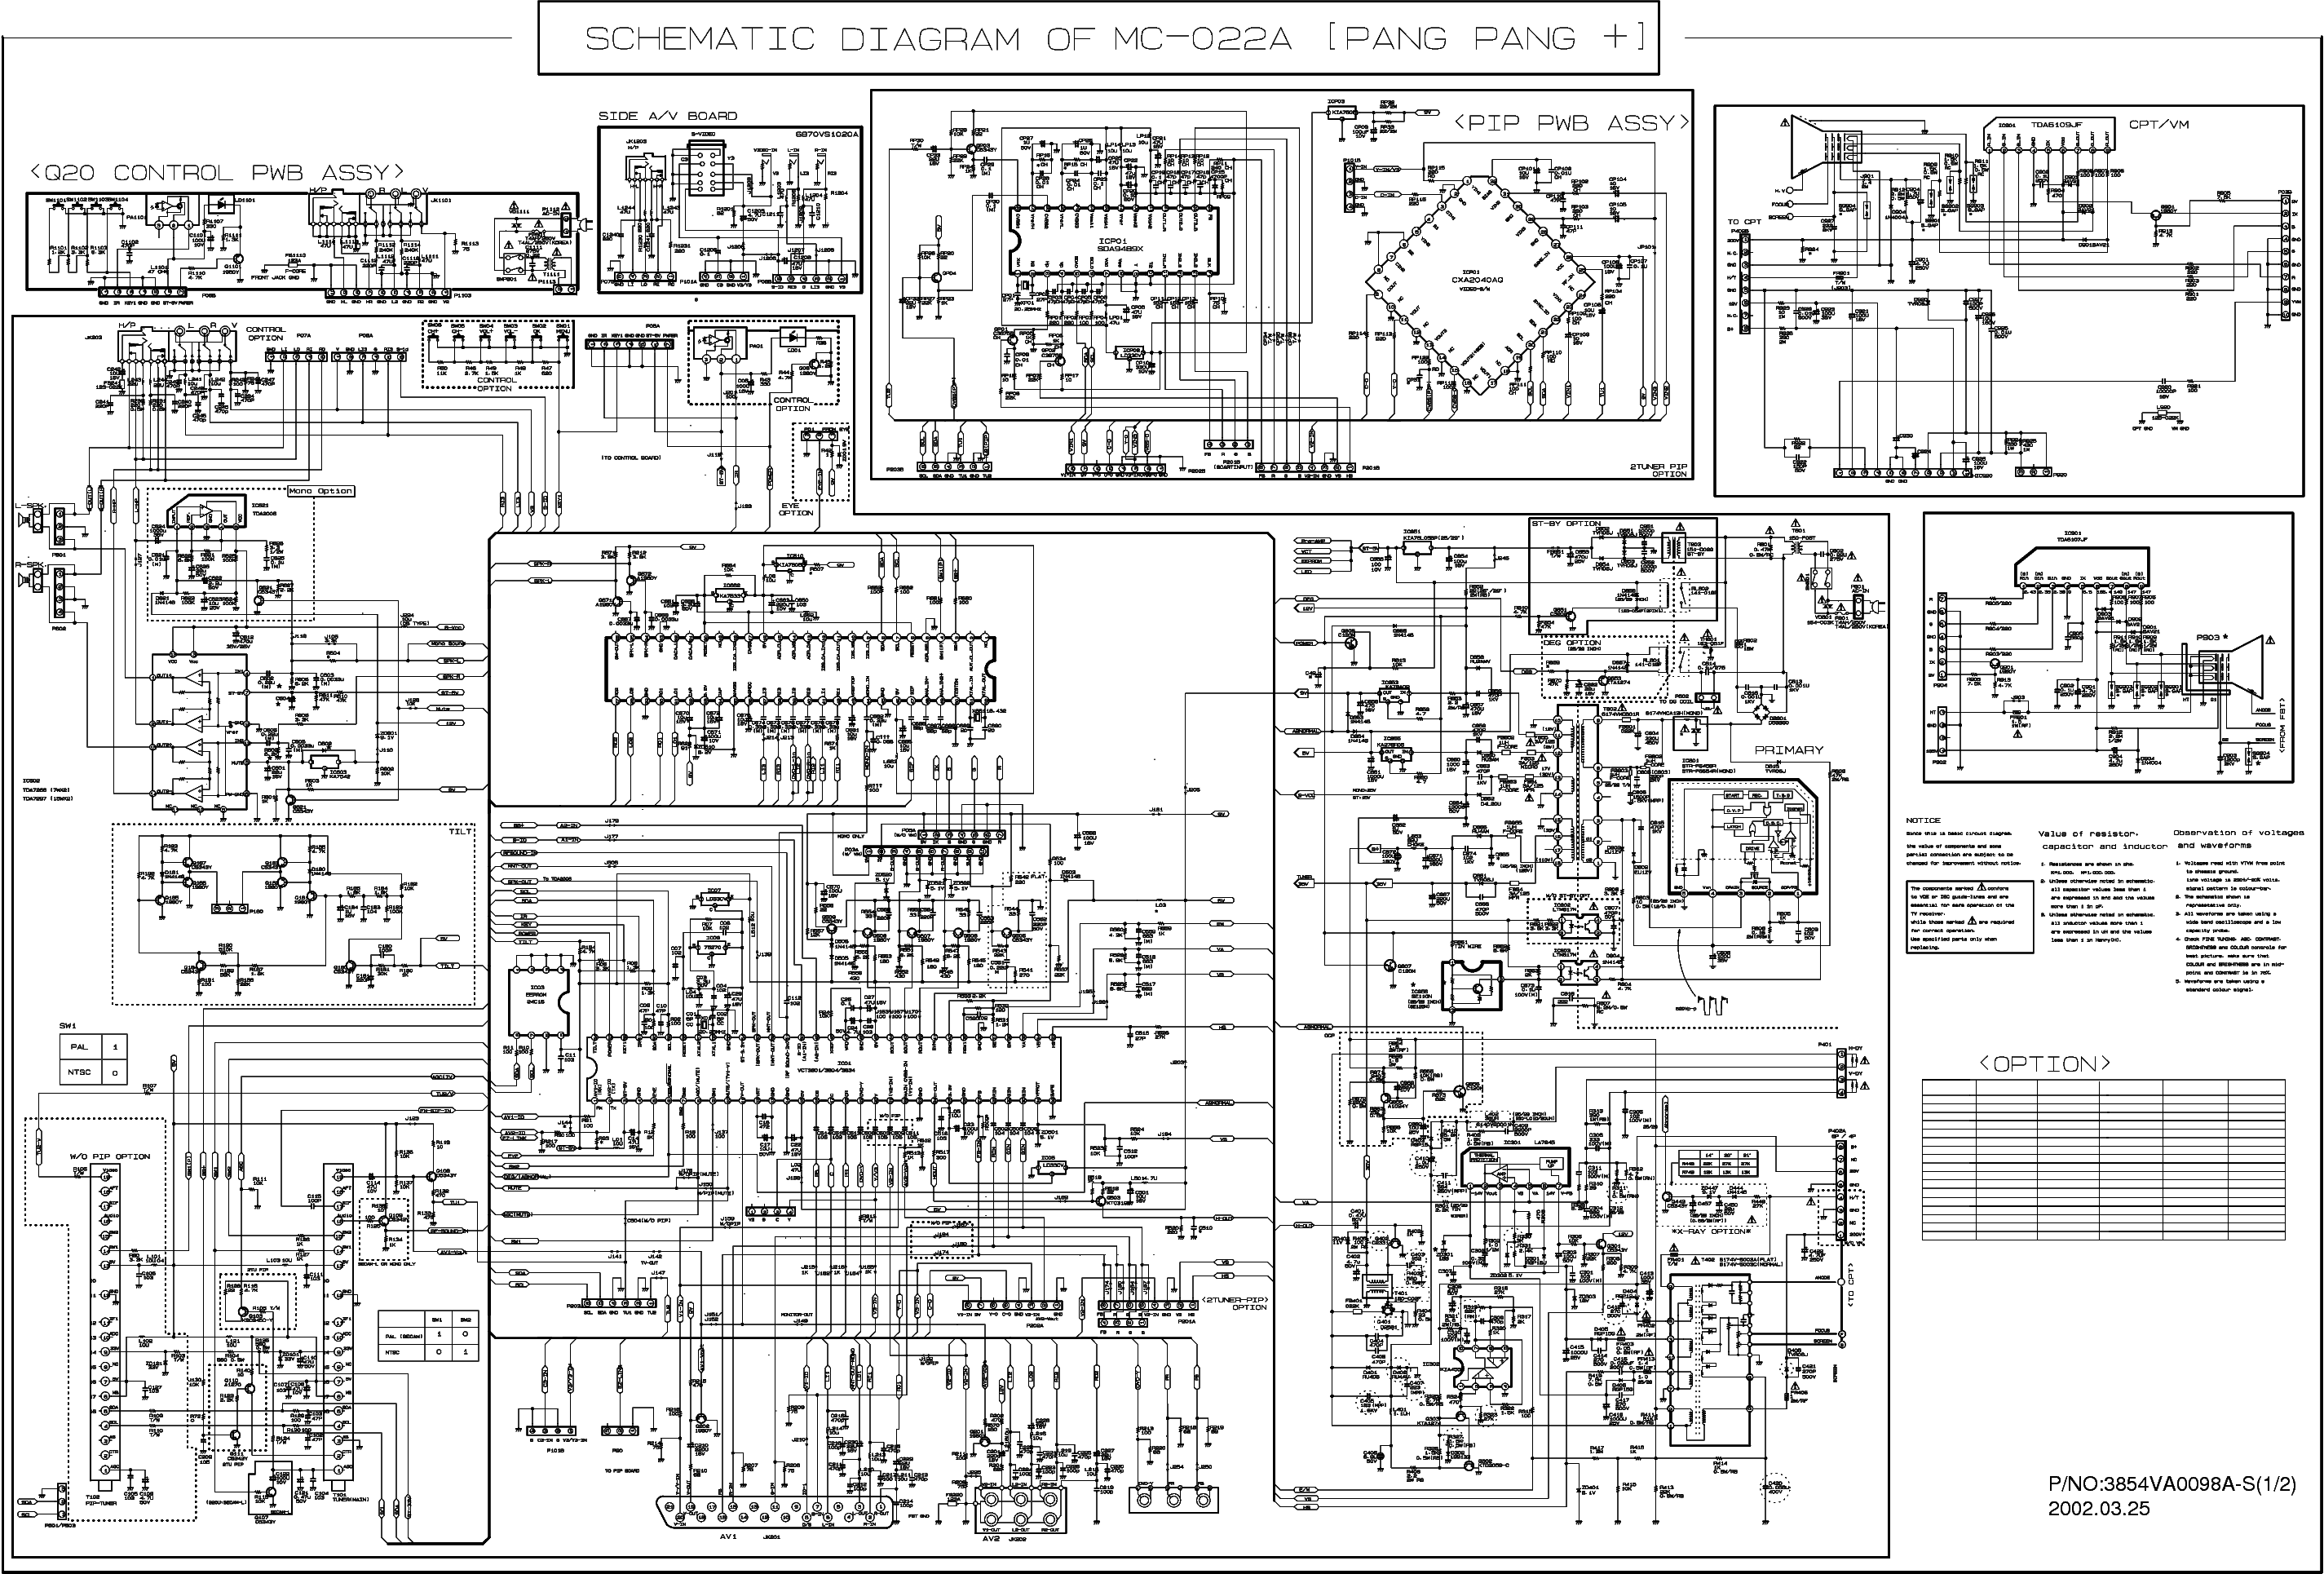 how to use schematic mc